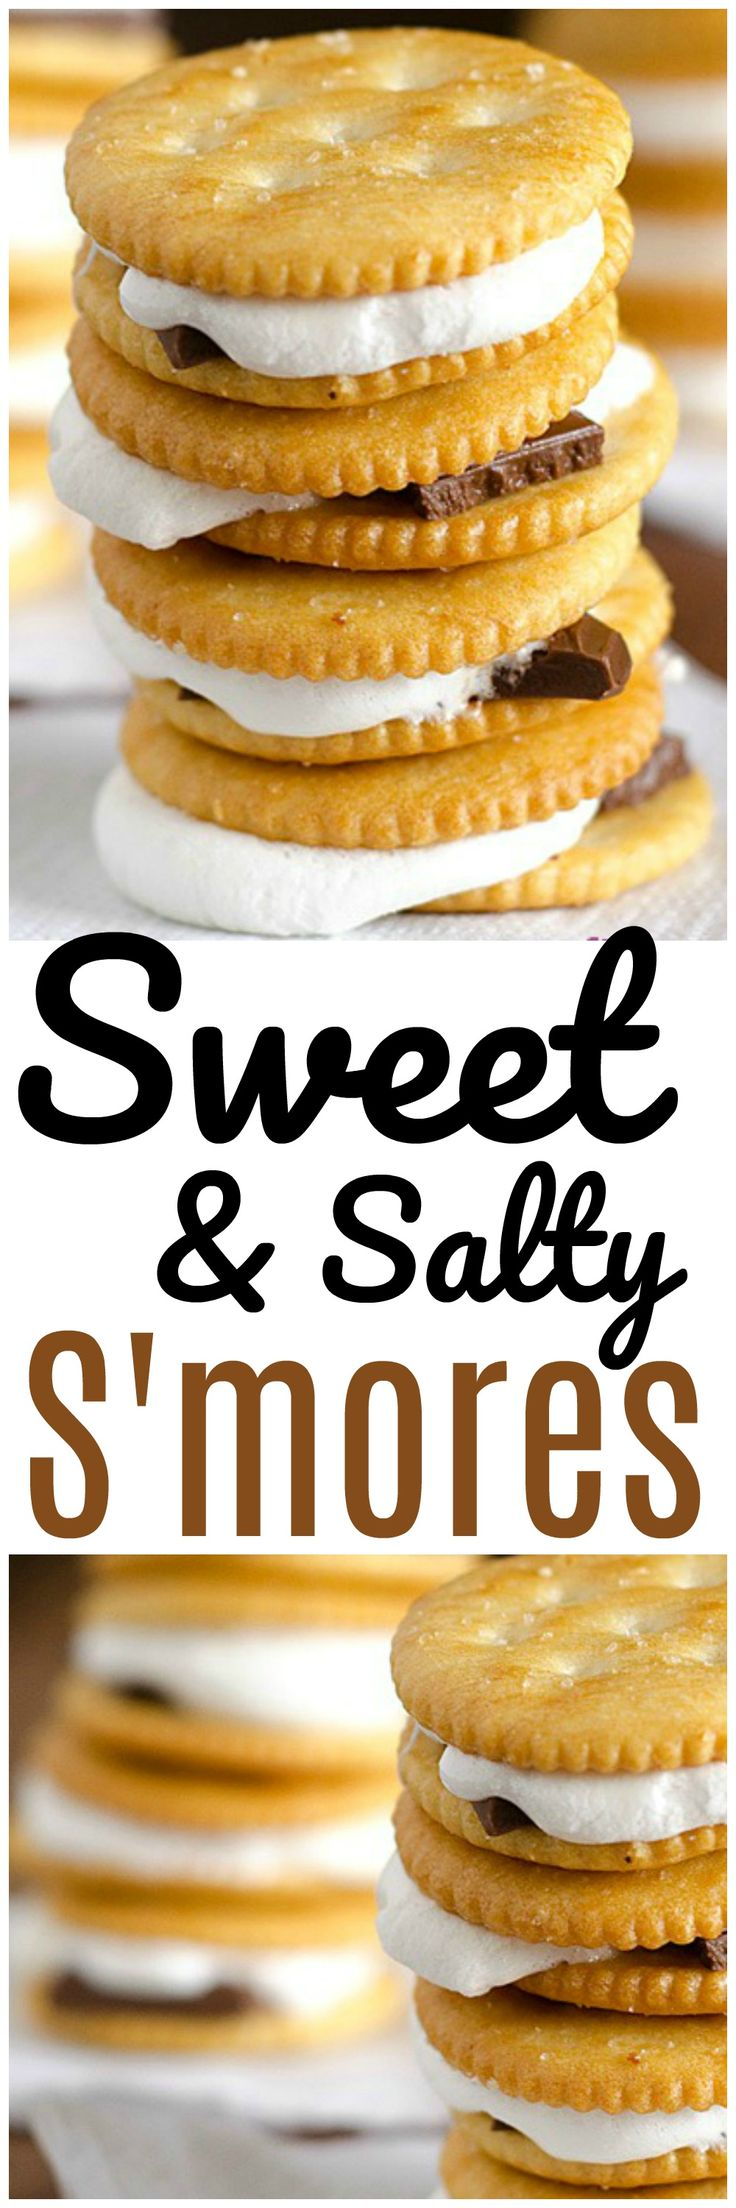 Sweet and Salty S'mores are INCREDIBLE! They're crazy easy to make last minute too! No campfire required. Bake these sweet and salty s'mores for a last minute party idea, family fun night or romantic date night at home! Sweet and salty s'mores are fun food at it's finest!